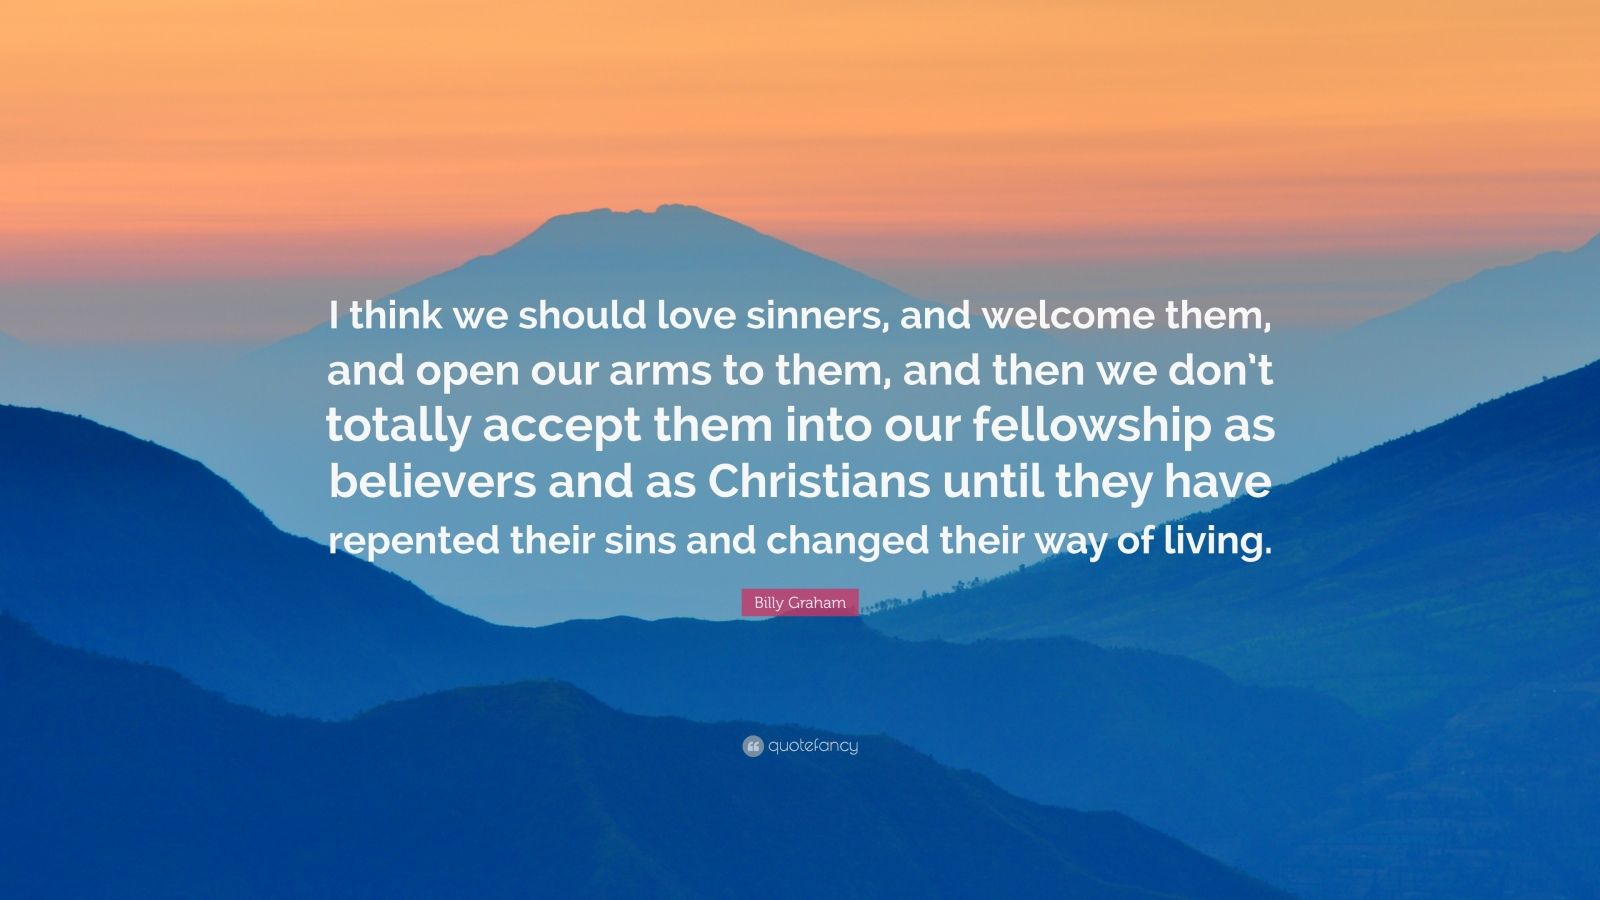 """Billy Graham Quote: """"I think we should love sinners, and welcome them, and open our arms to them, and then we don't totally accept them into our fellowship as believers and as Christians until they have repented their sins and changed their way of living."""""""